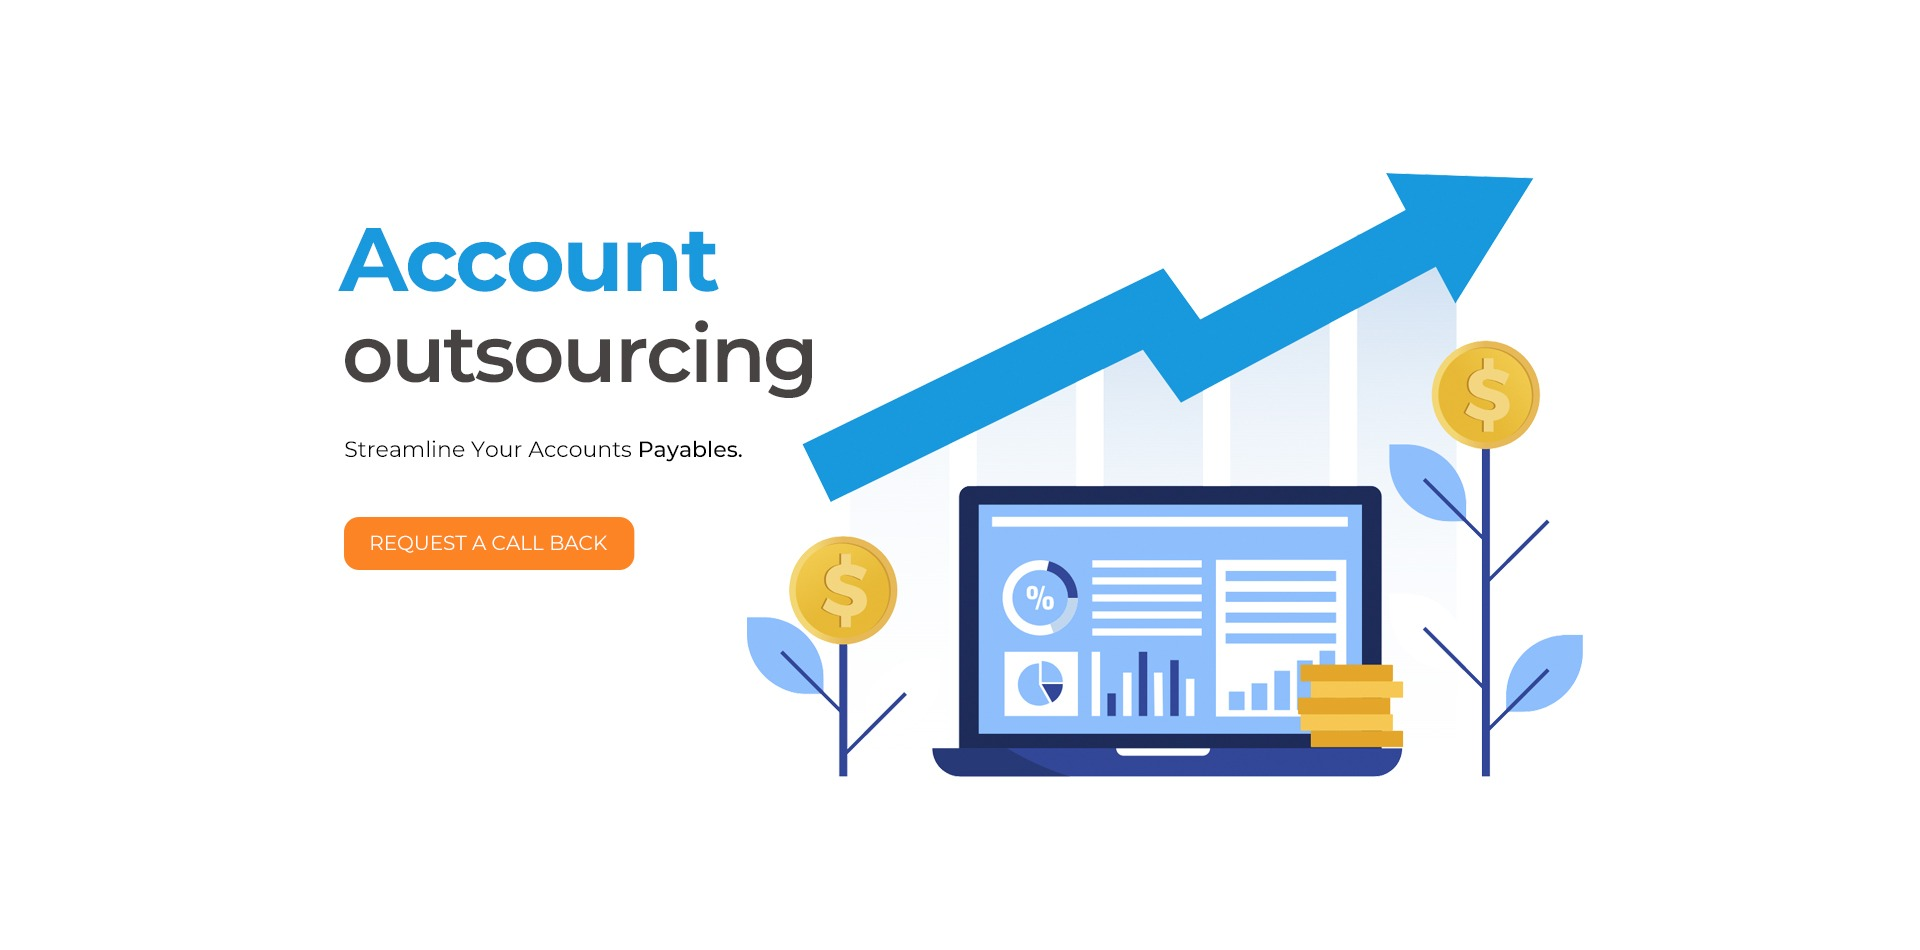 3. Management-account-outsourcing